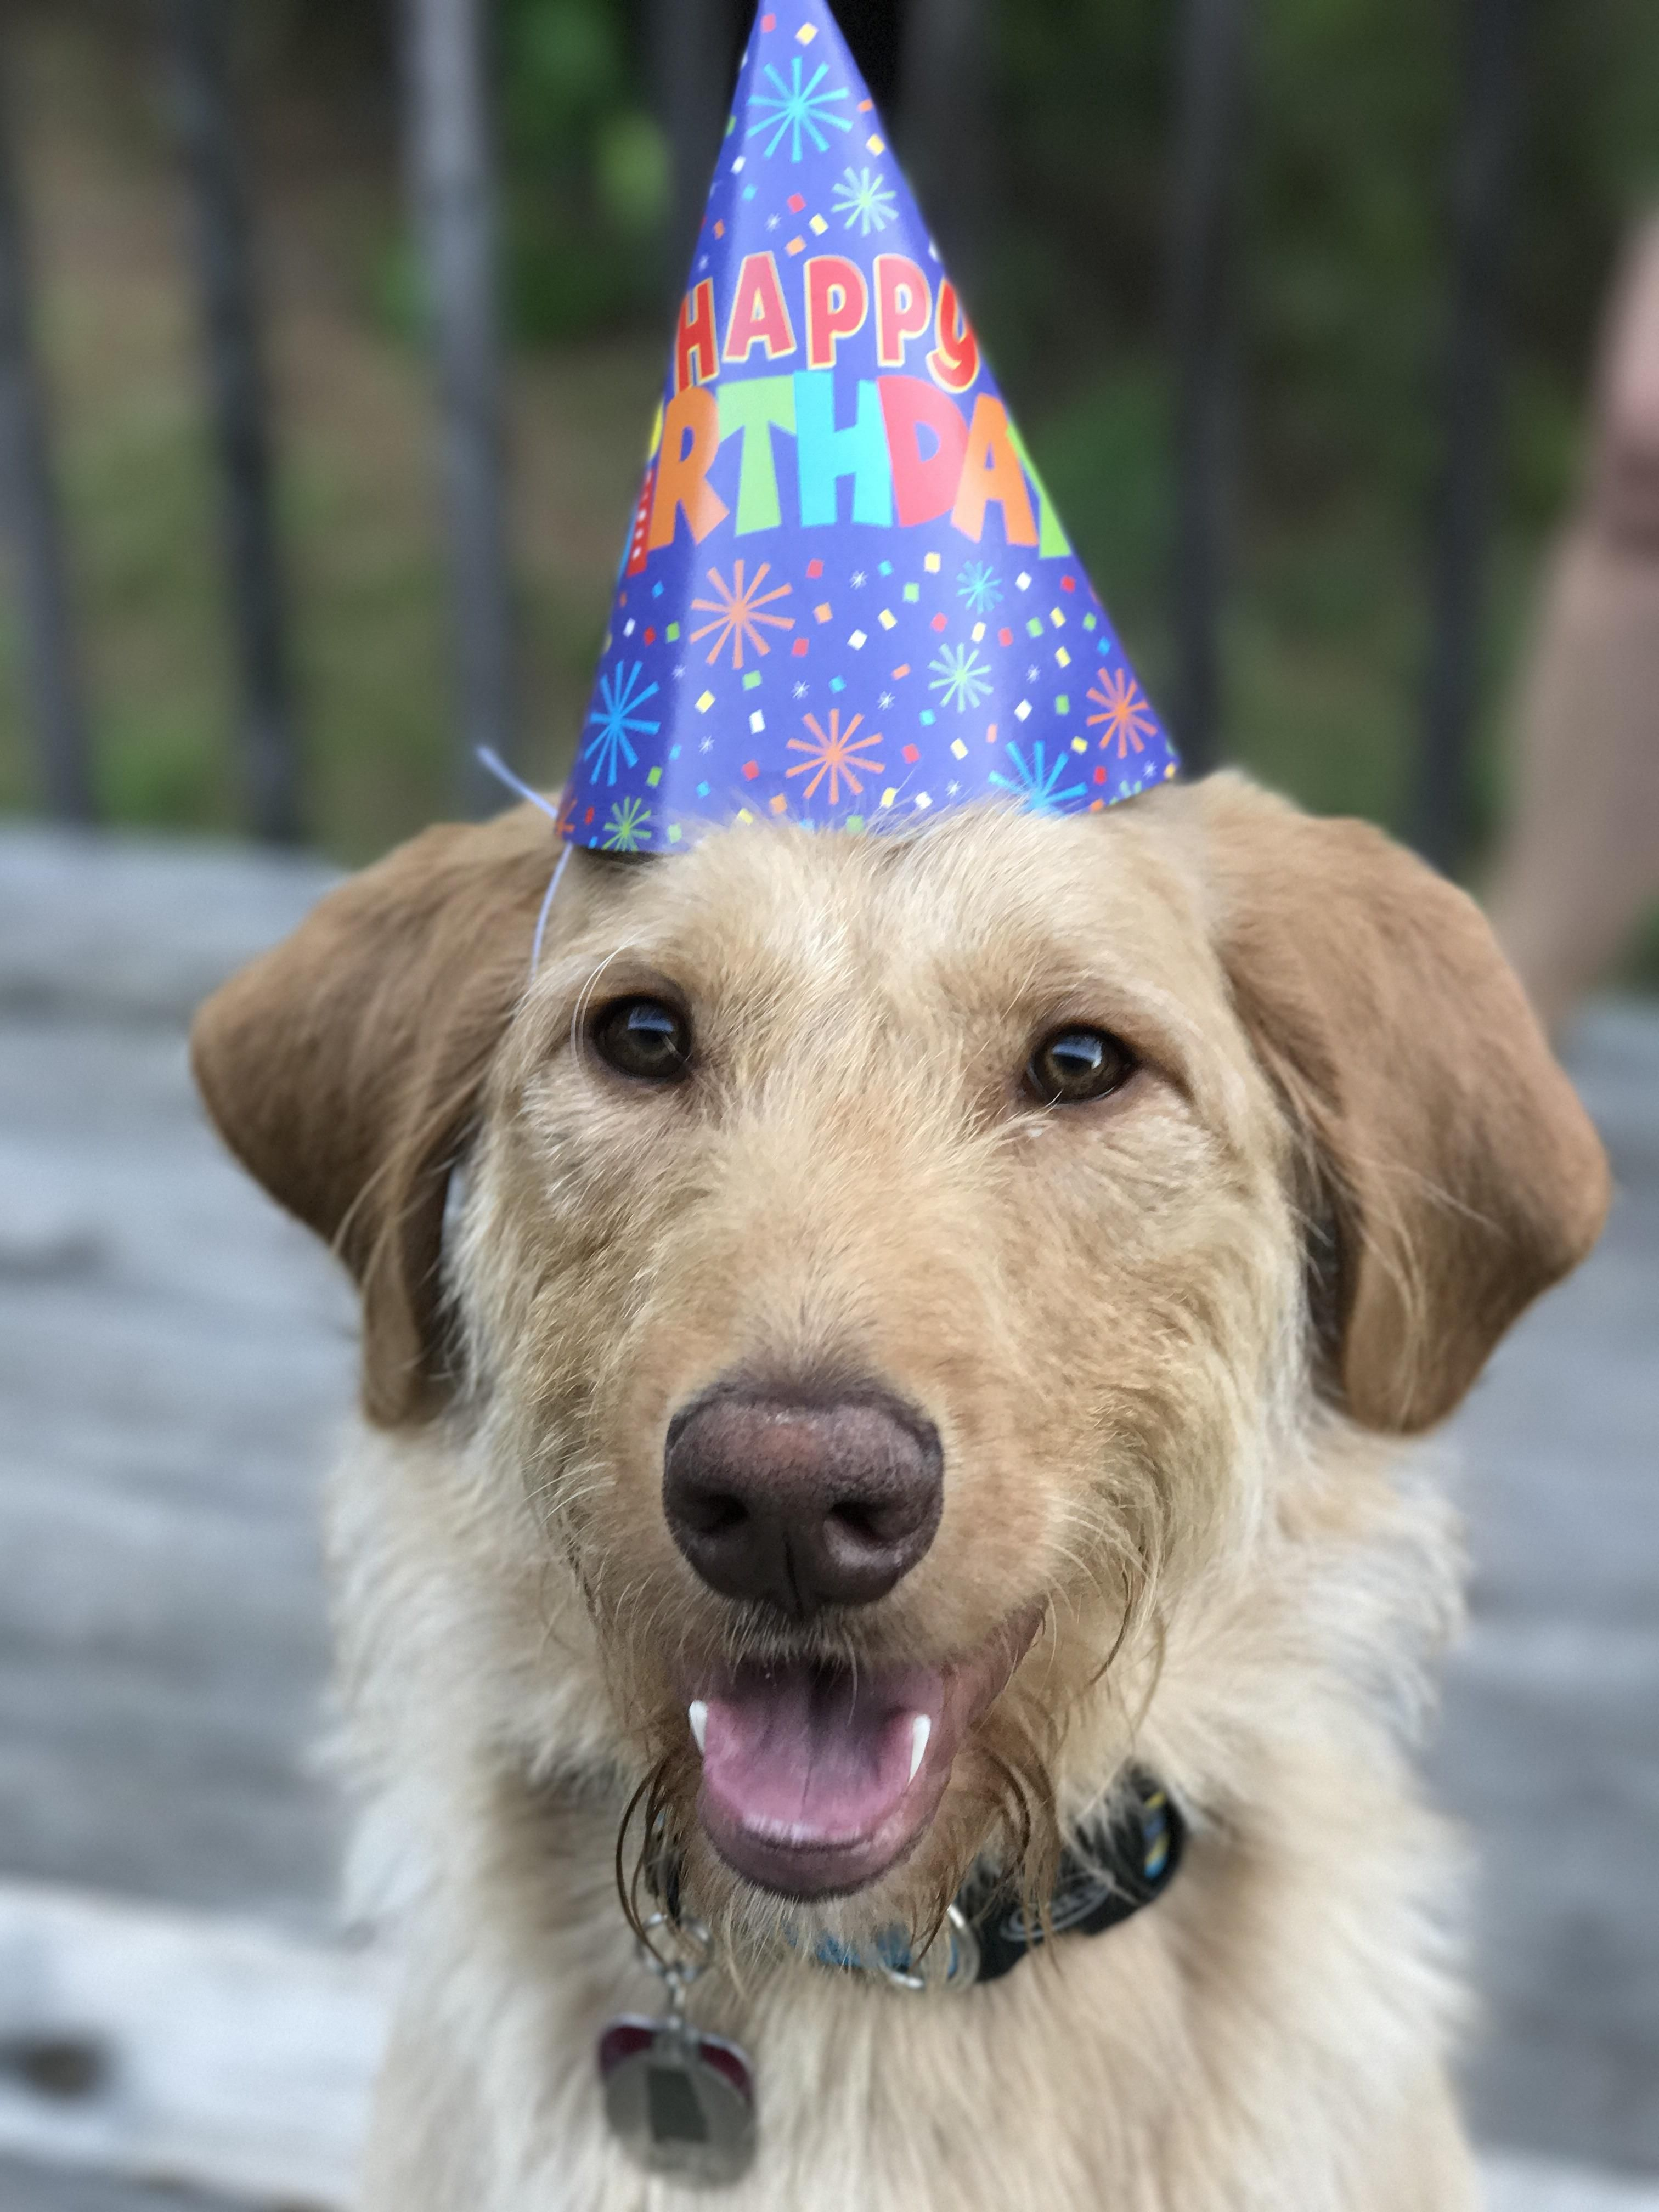 My buddy turned a year old today.